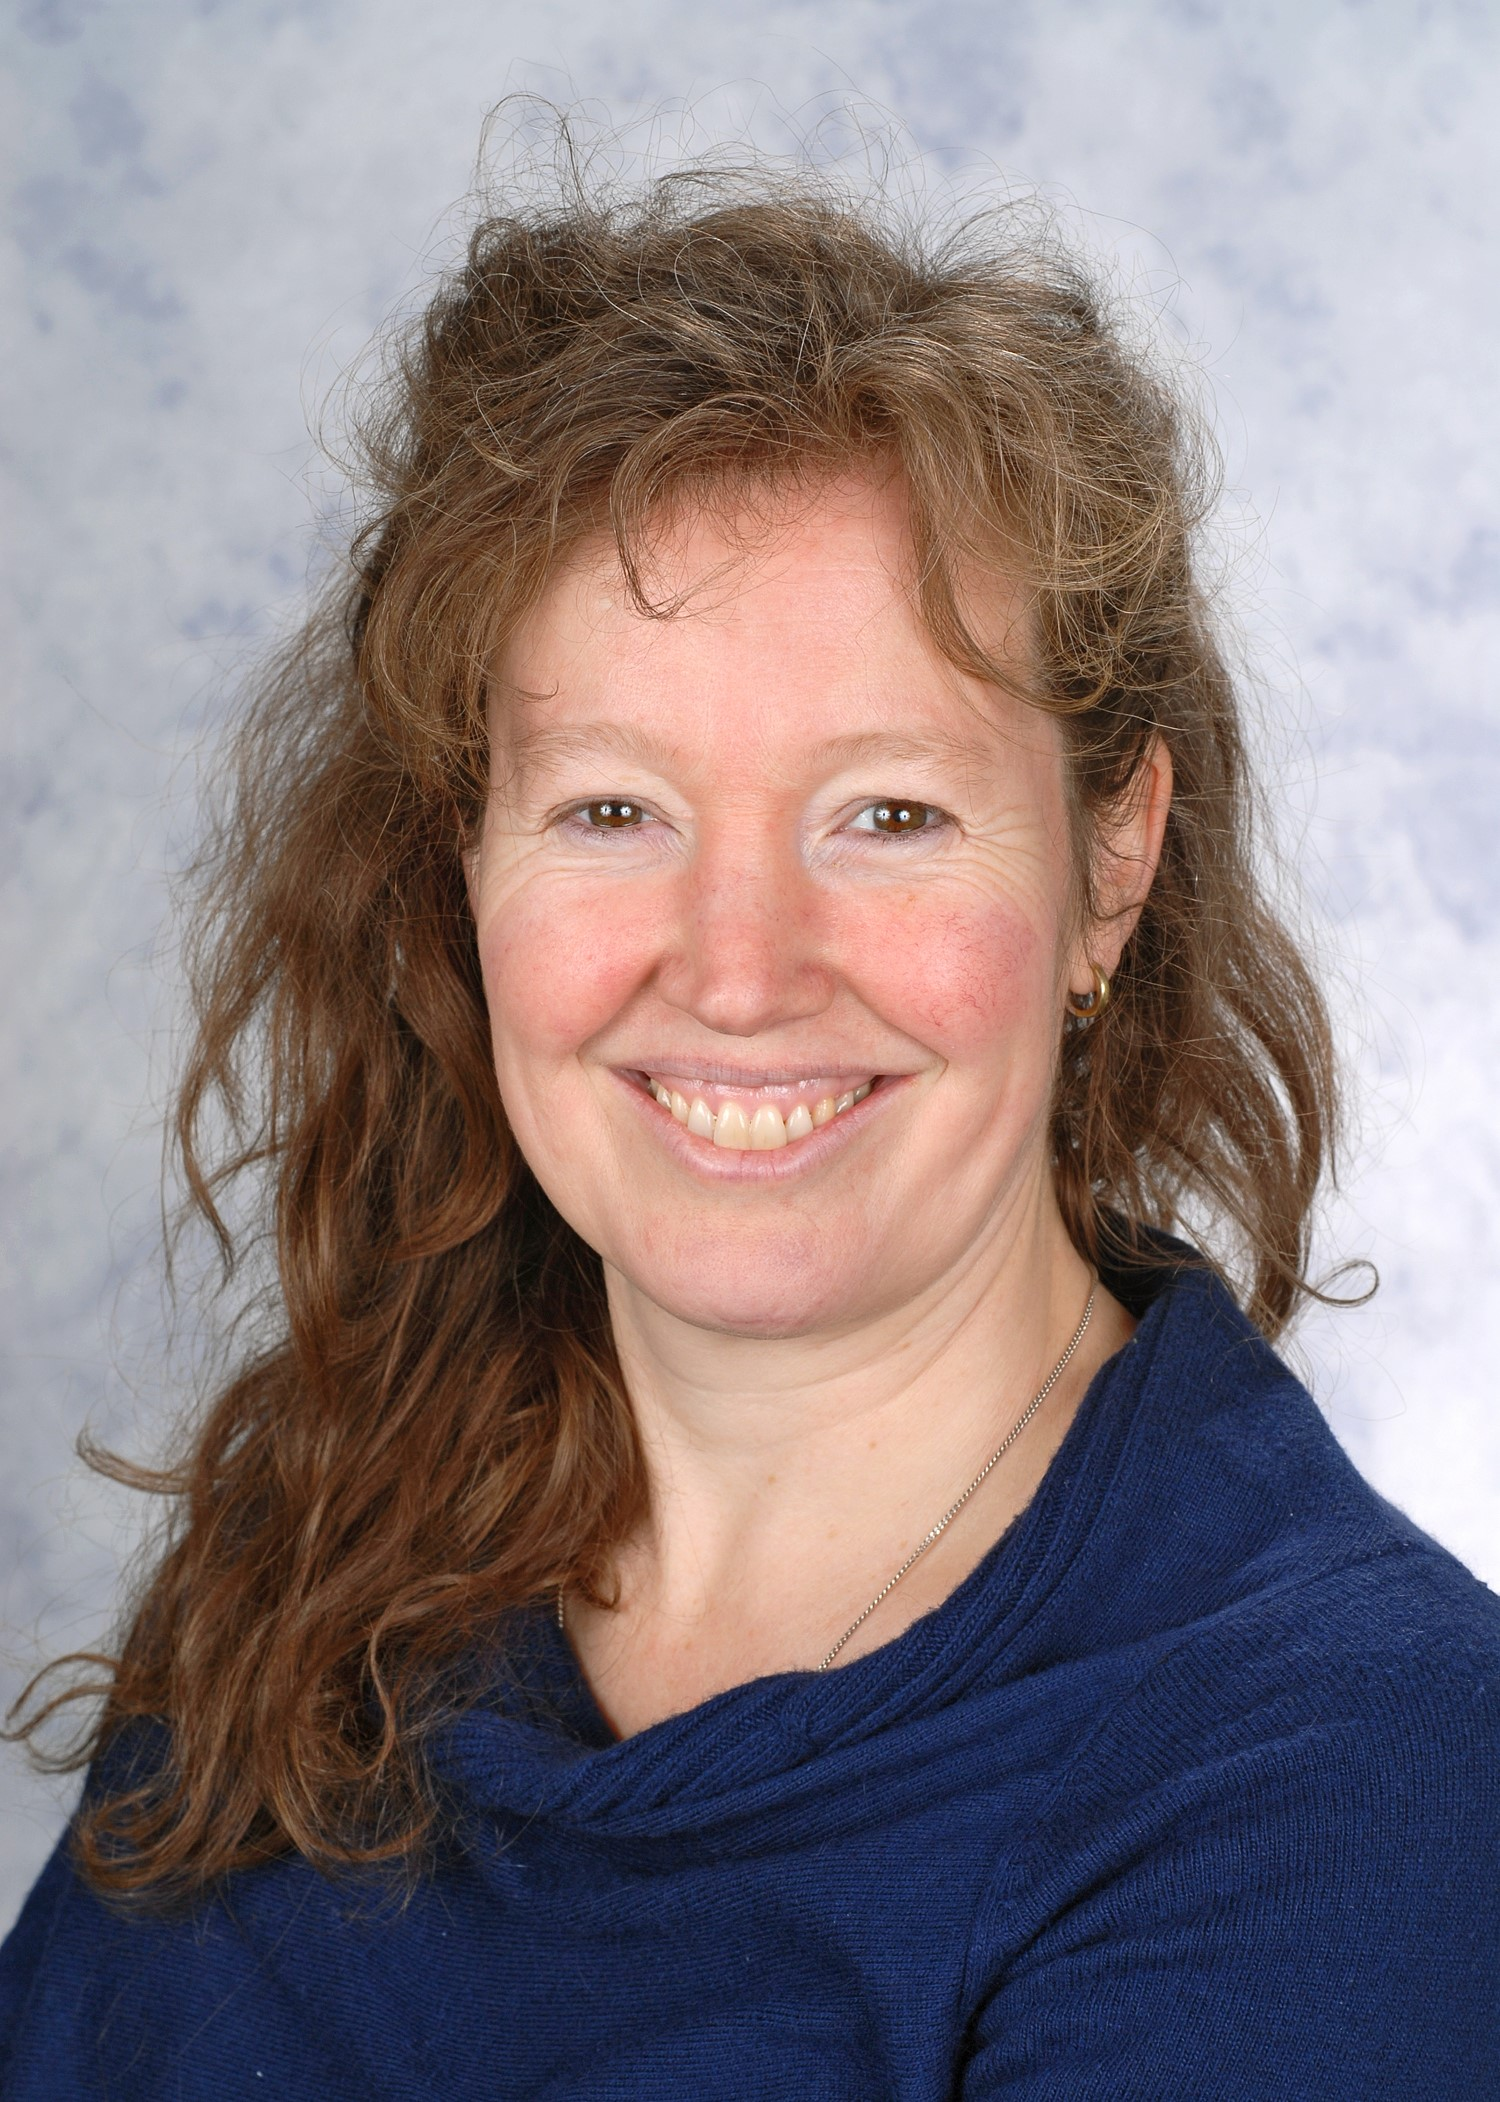 Lisette Bruning osteopaat IMC